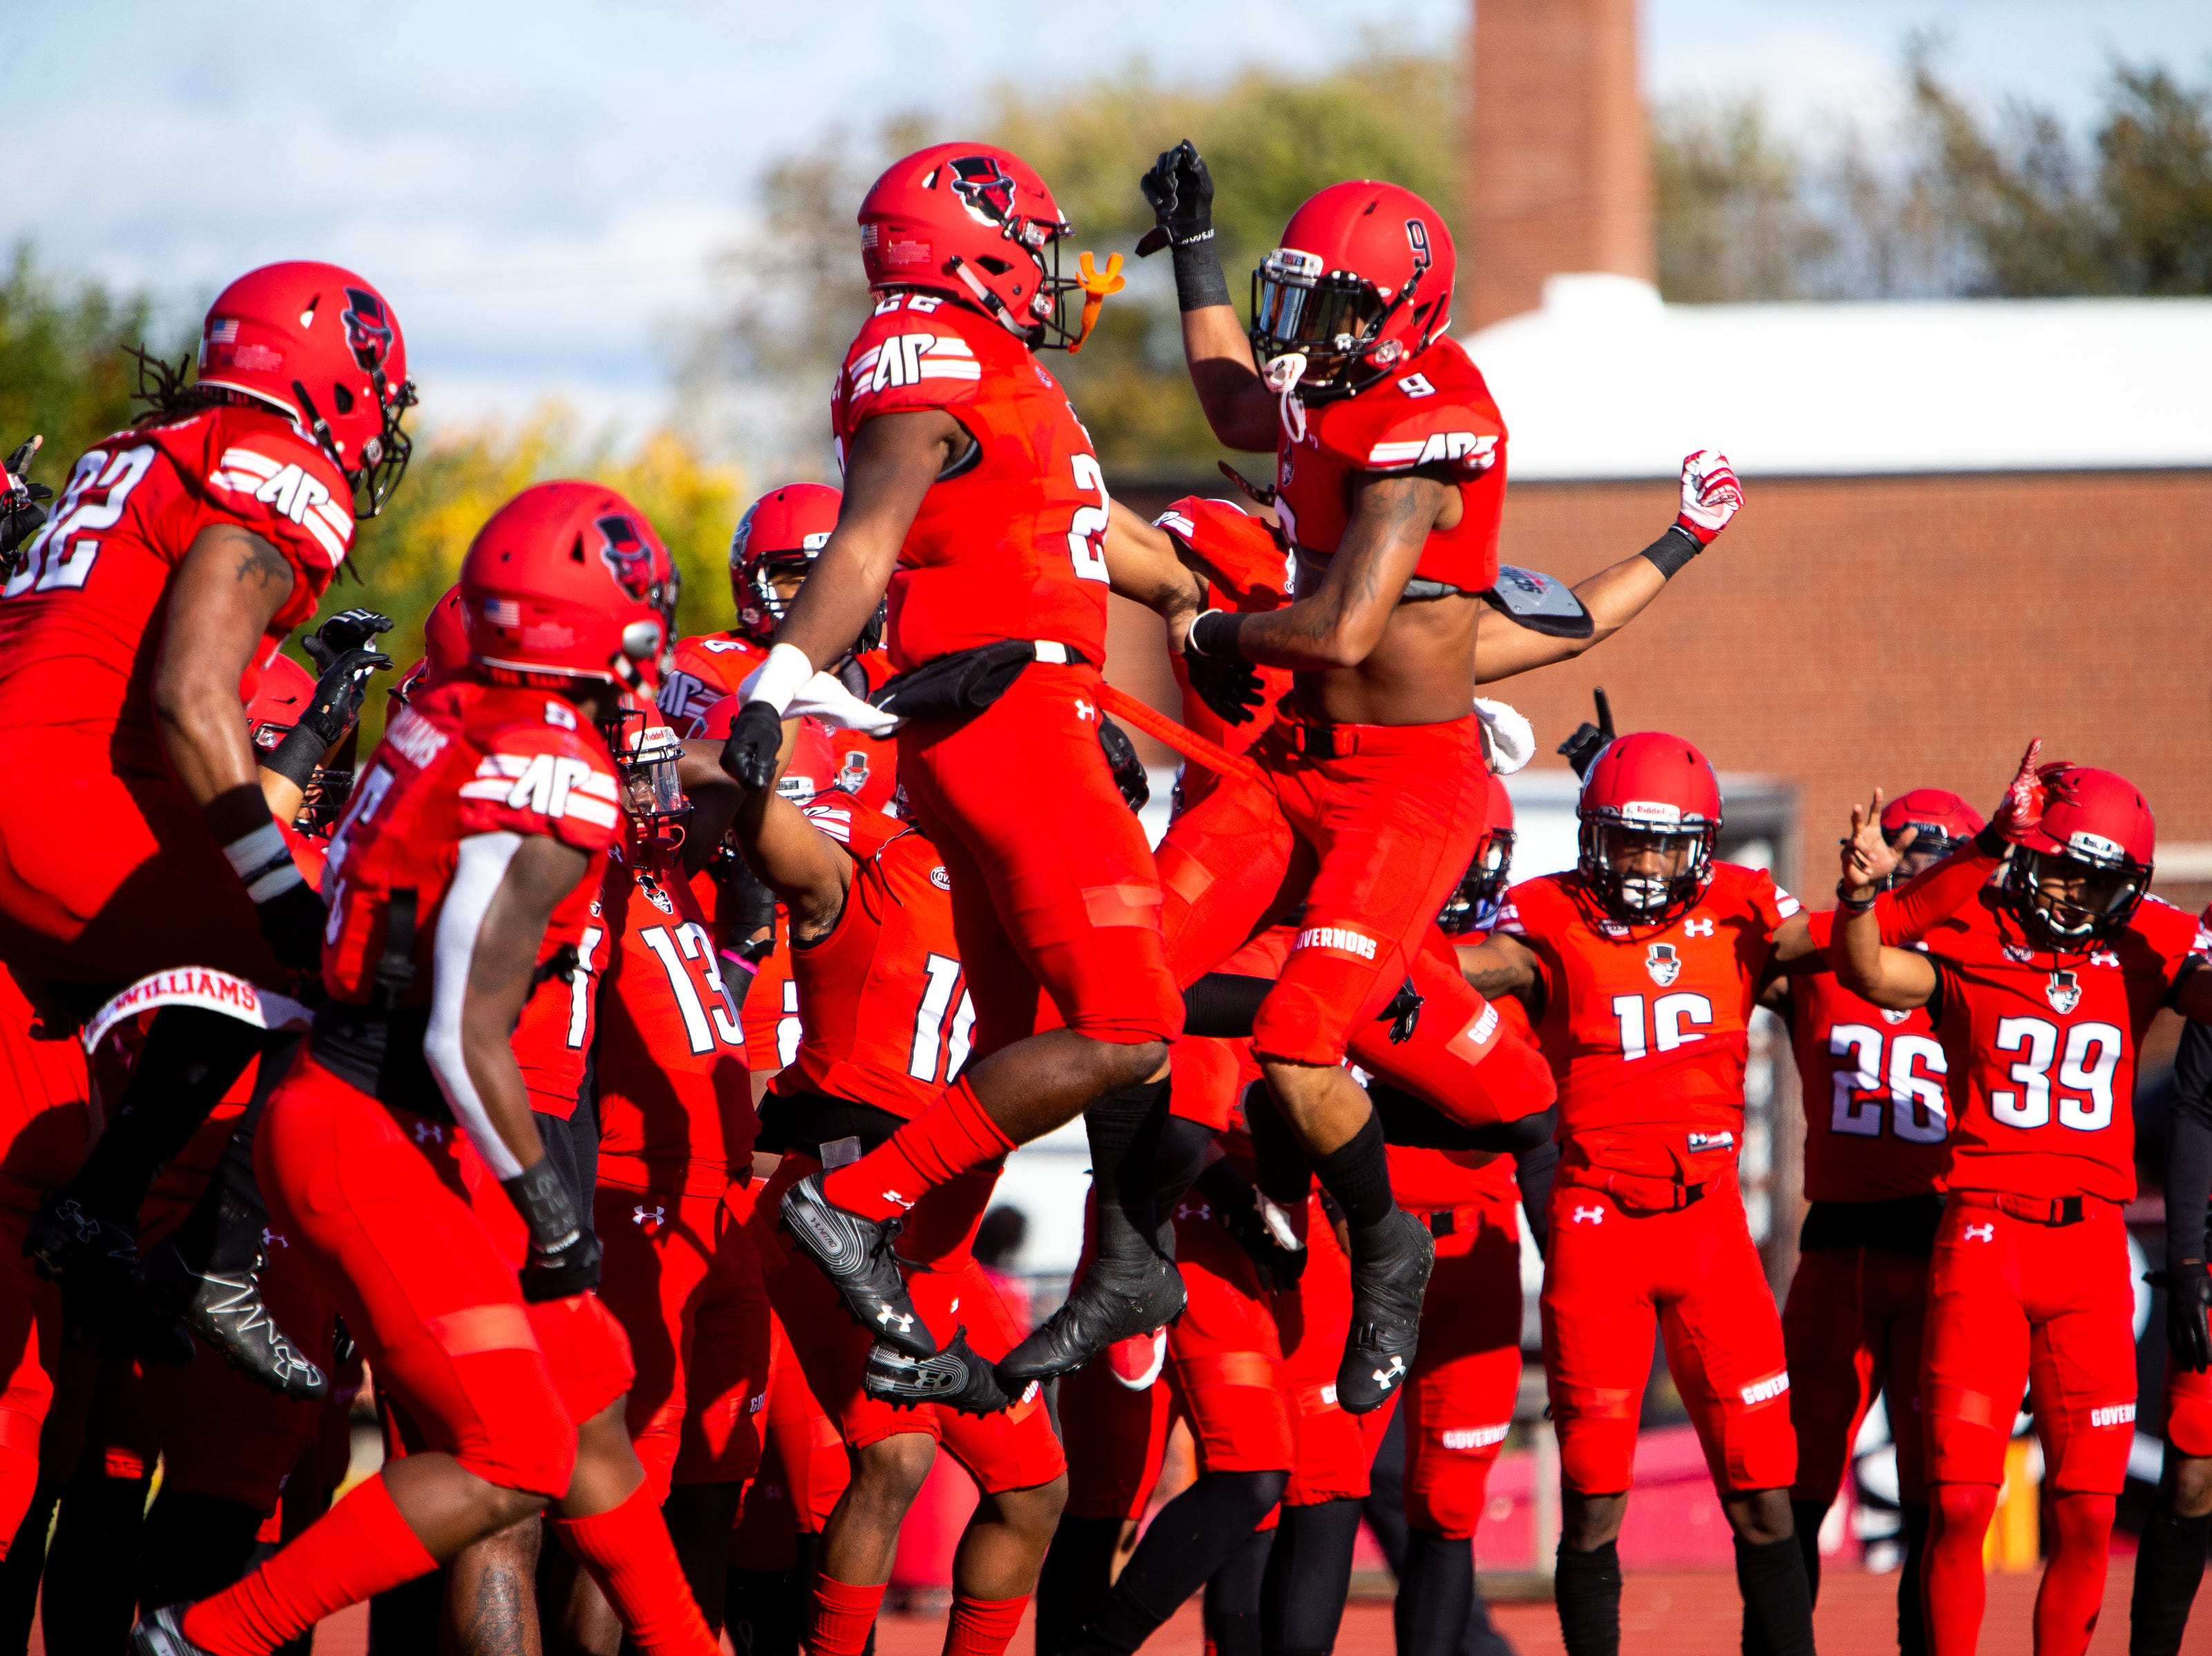 Austin Peay Governors warm up before the game at Fortera Stadium Saturday, Nov. 3, 2018, in Clarksville, Tenn.